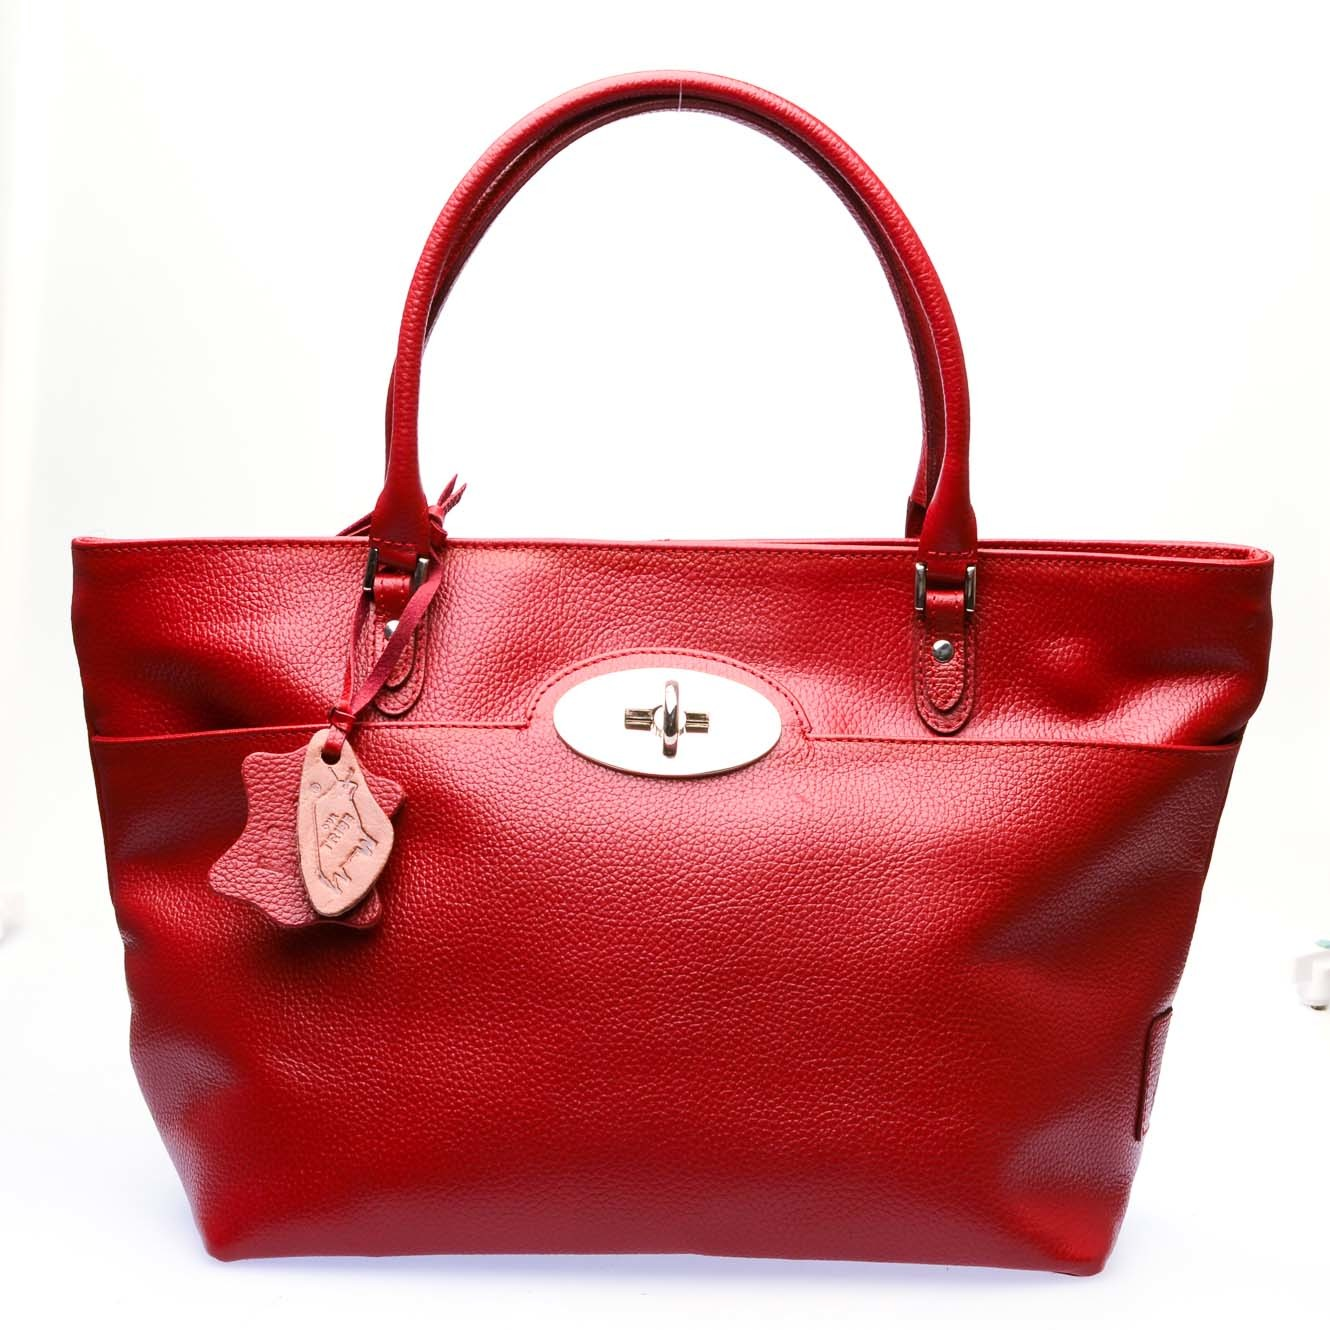 Our Tribe Women's Boat Shaped Tote -778